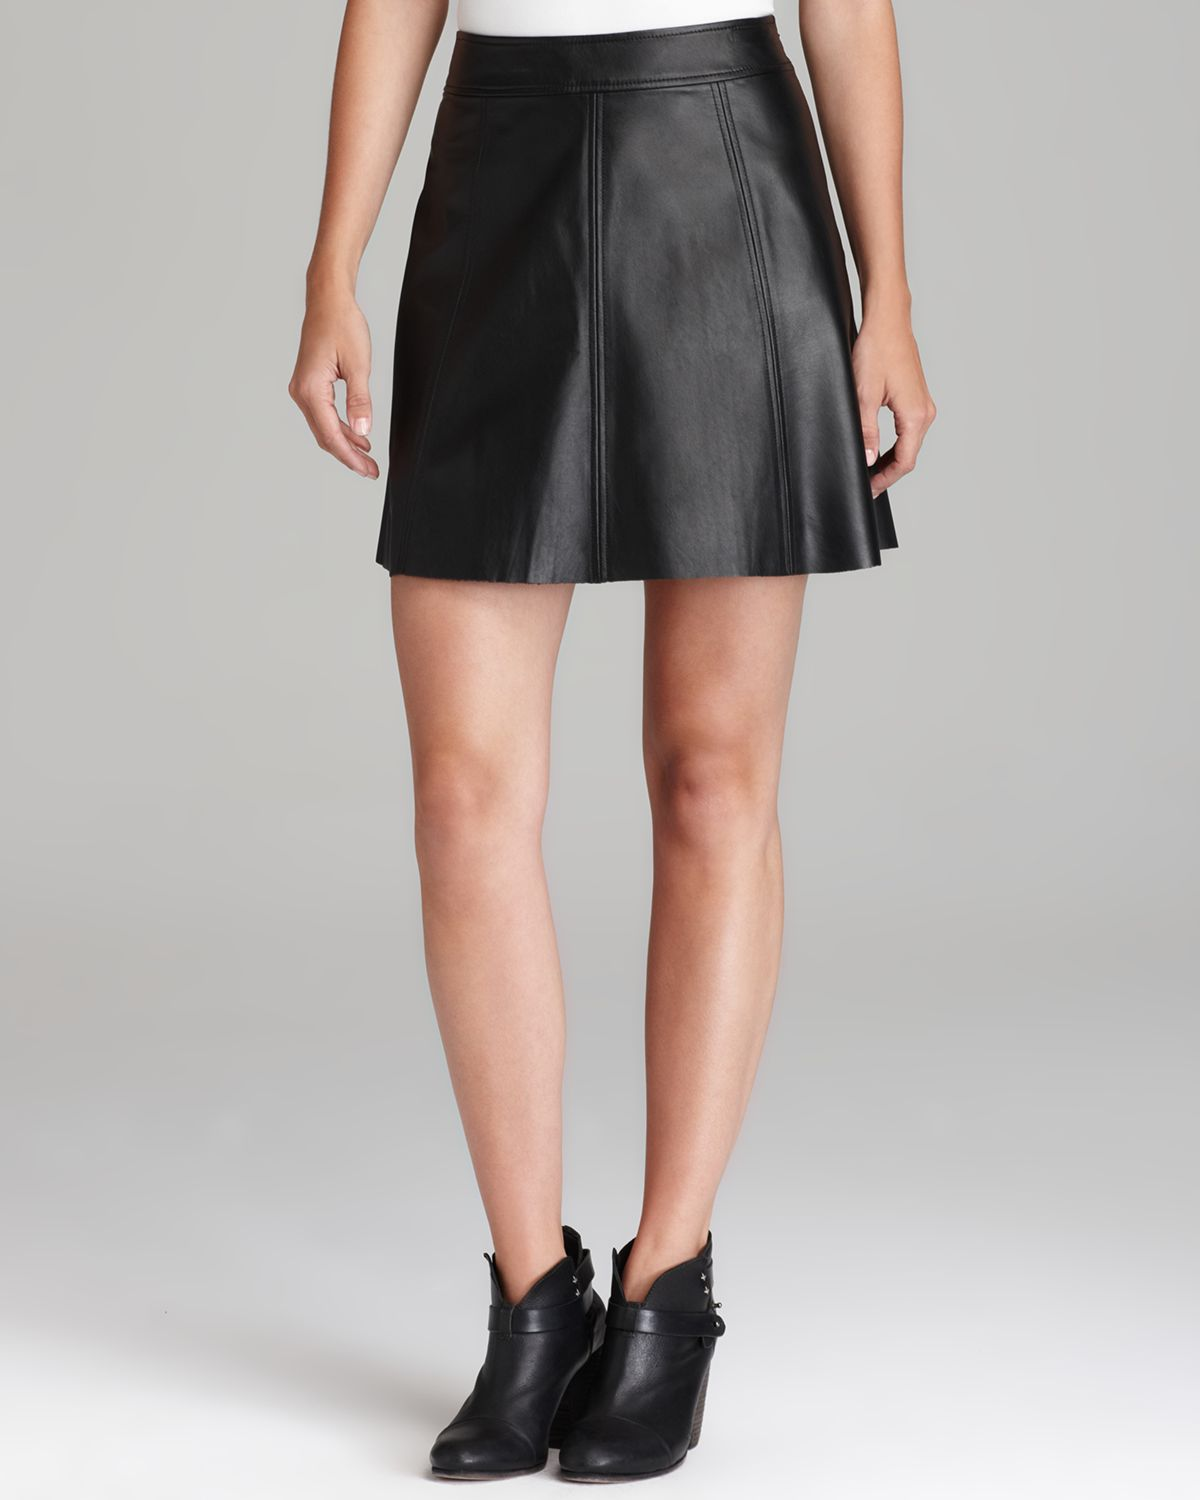 Patterson J Kincaid Skirt Polly Flirty Leather Bloomingdales .